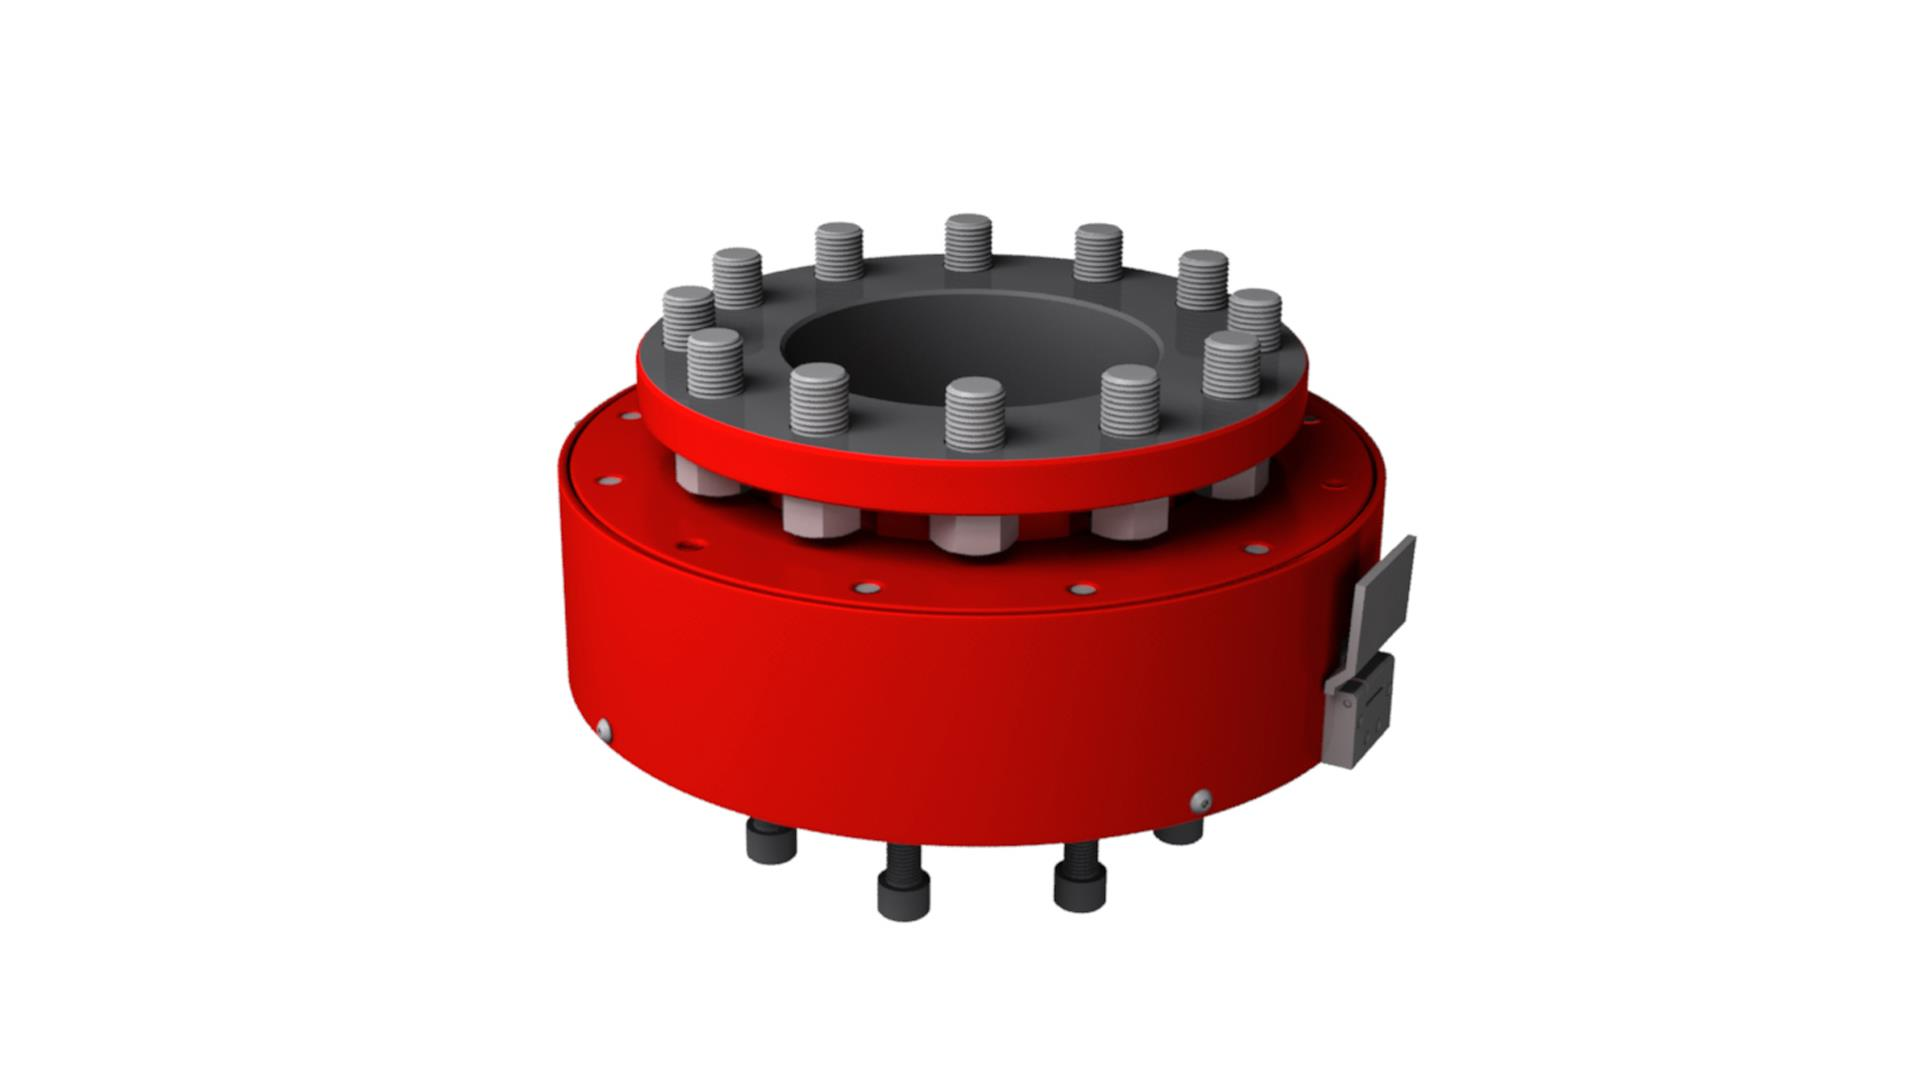 Render of Injector Connector